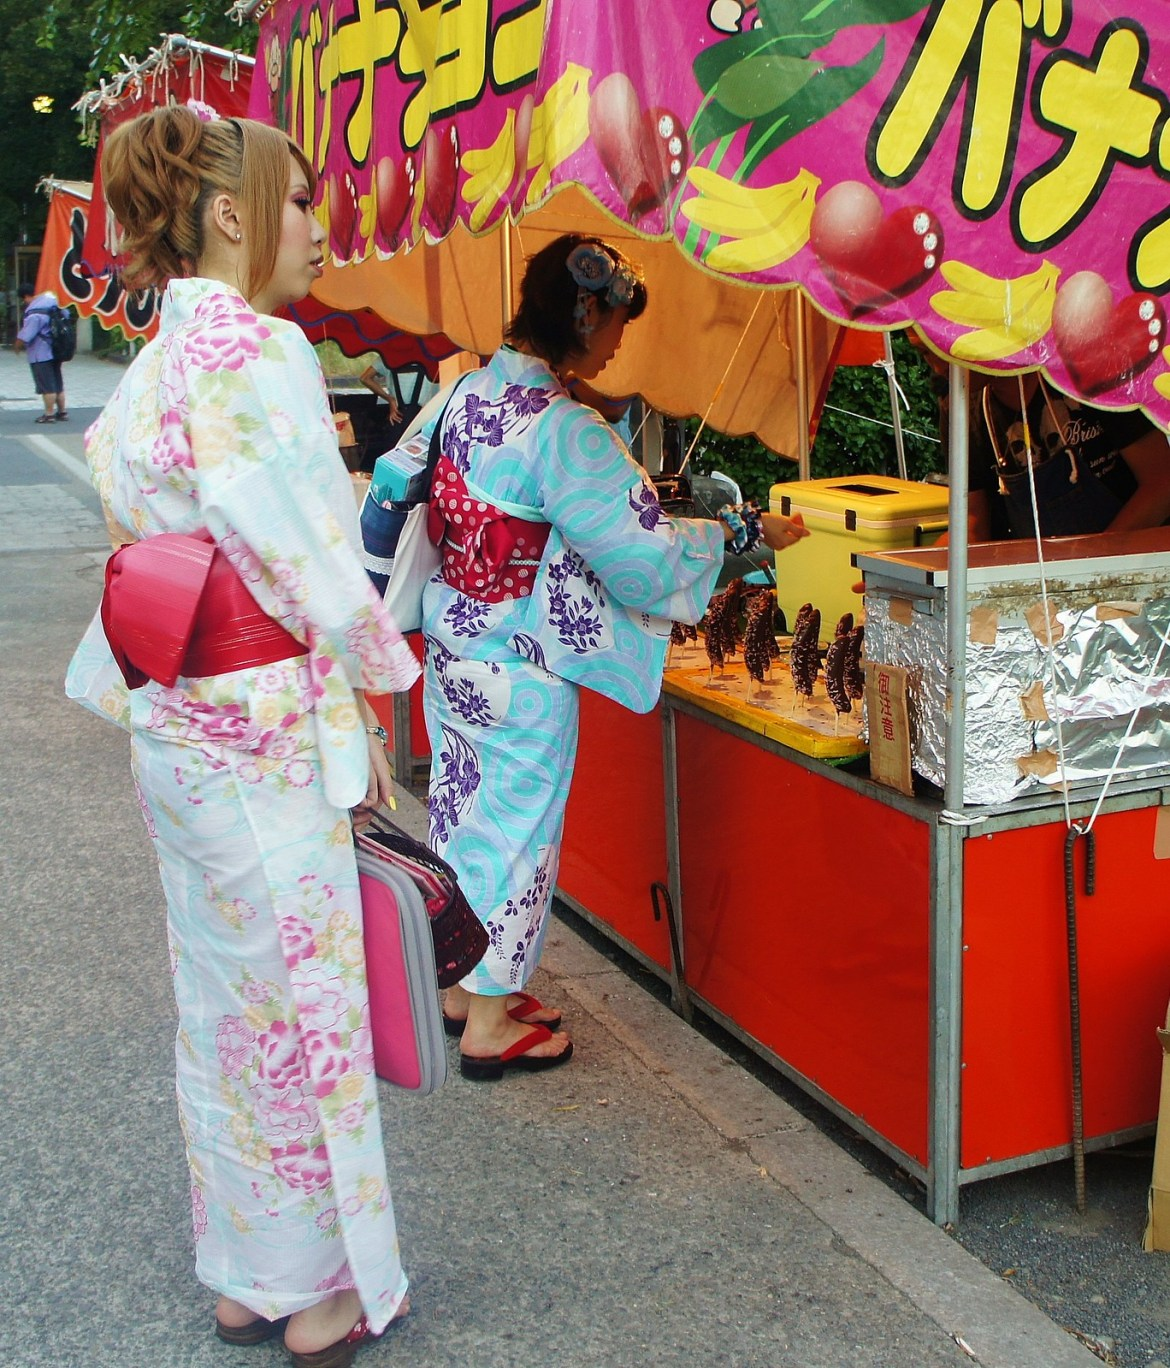 Chocolate Banana and Kimono at Ueno Park